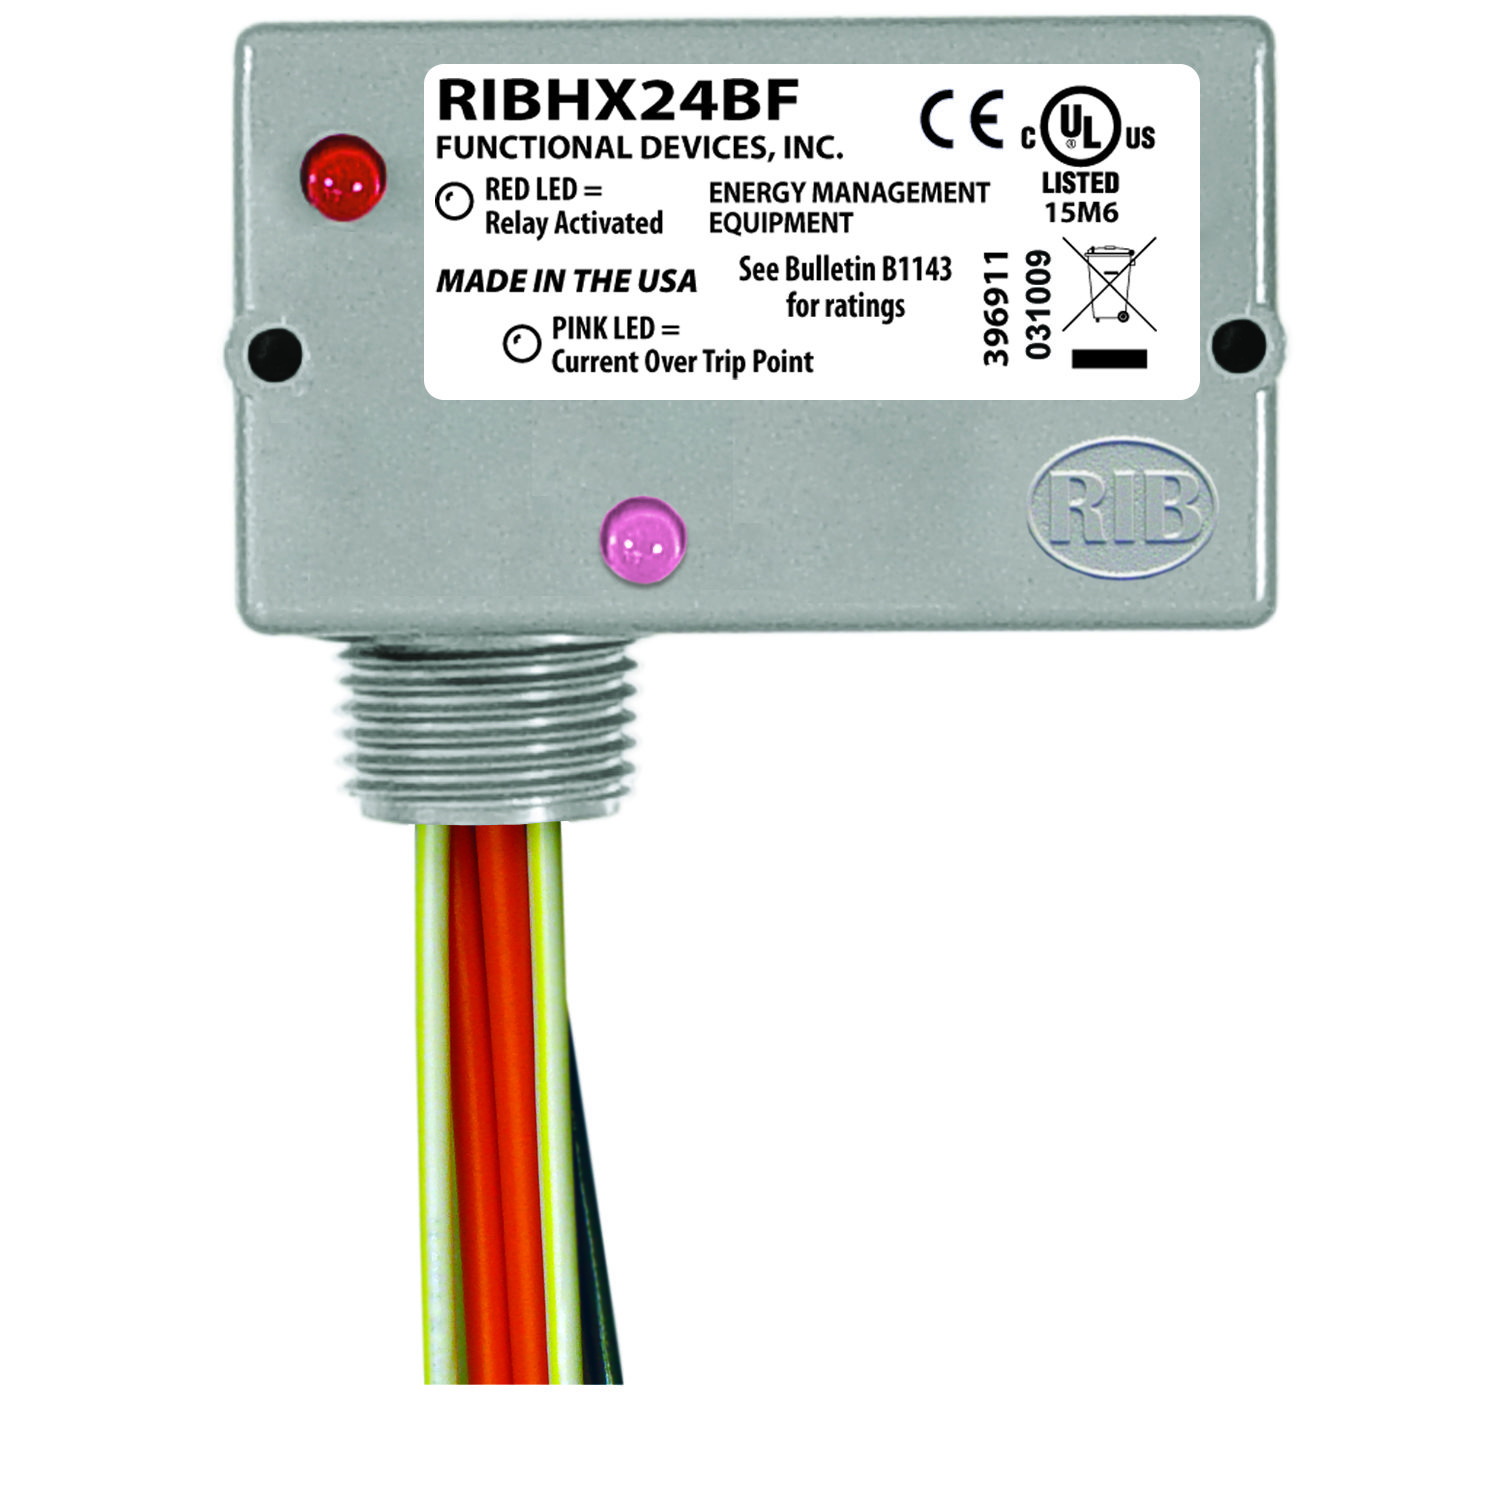 Ribhx24bf Rib Relays Functional Devices Cci